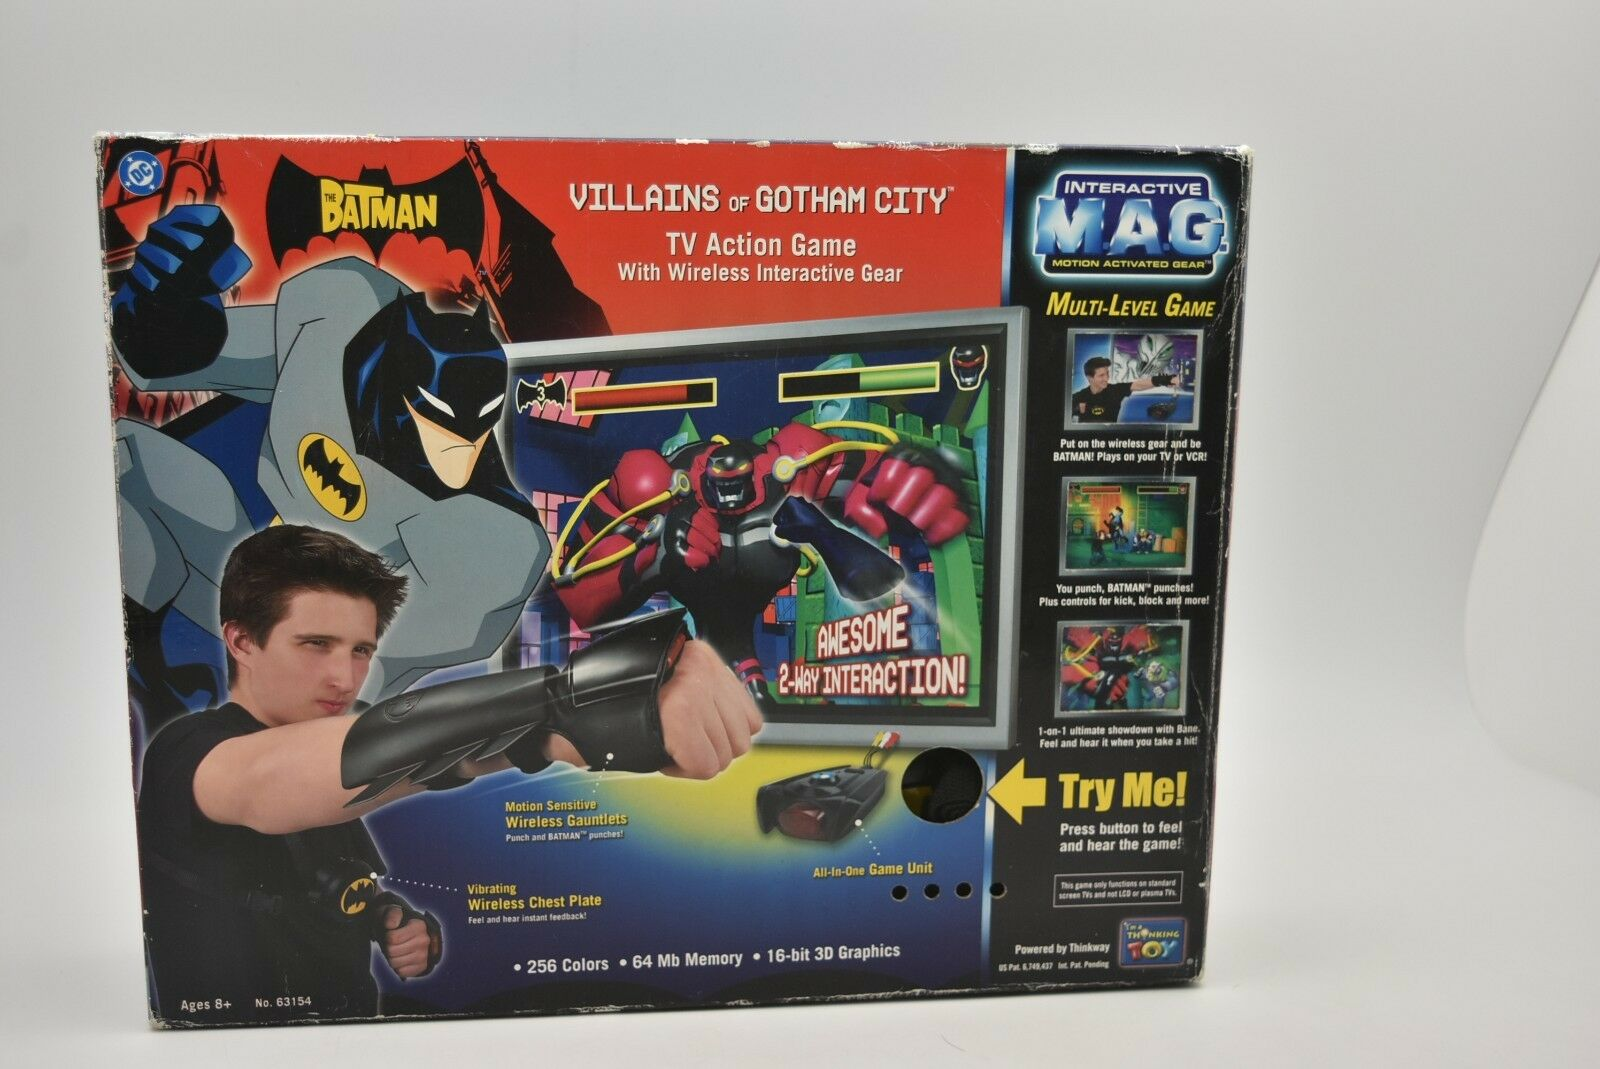 DC Batman villanos de Gotham City Tv Juego De Acción Wireless Electronics